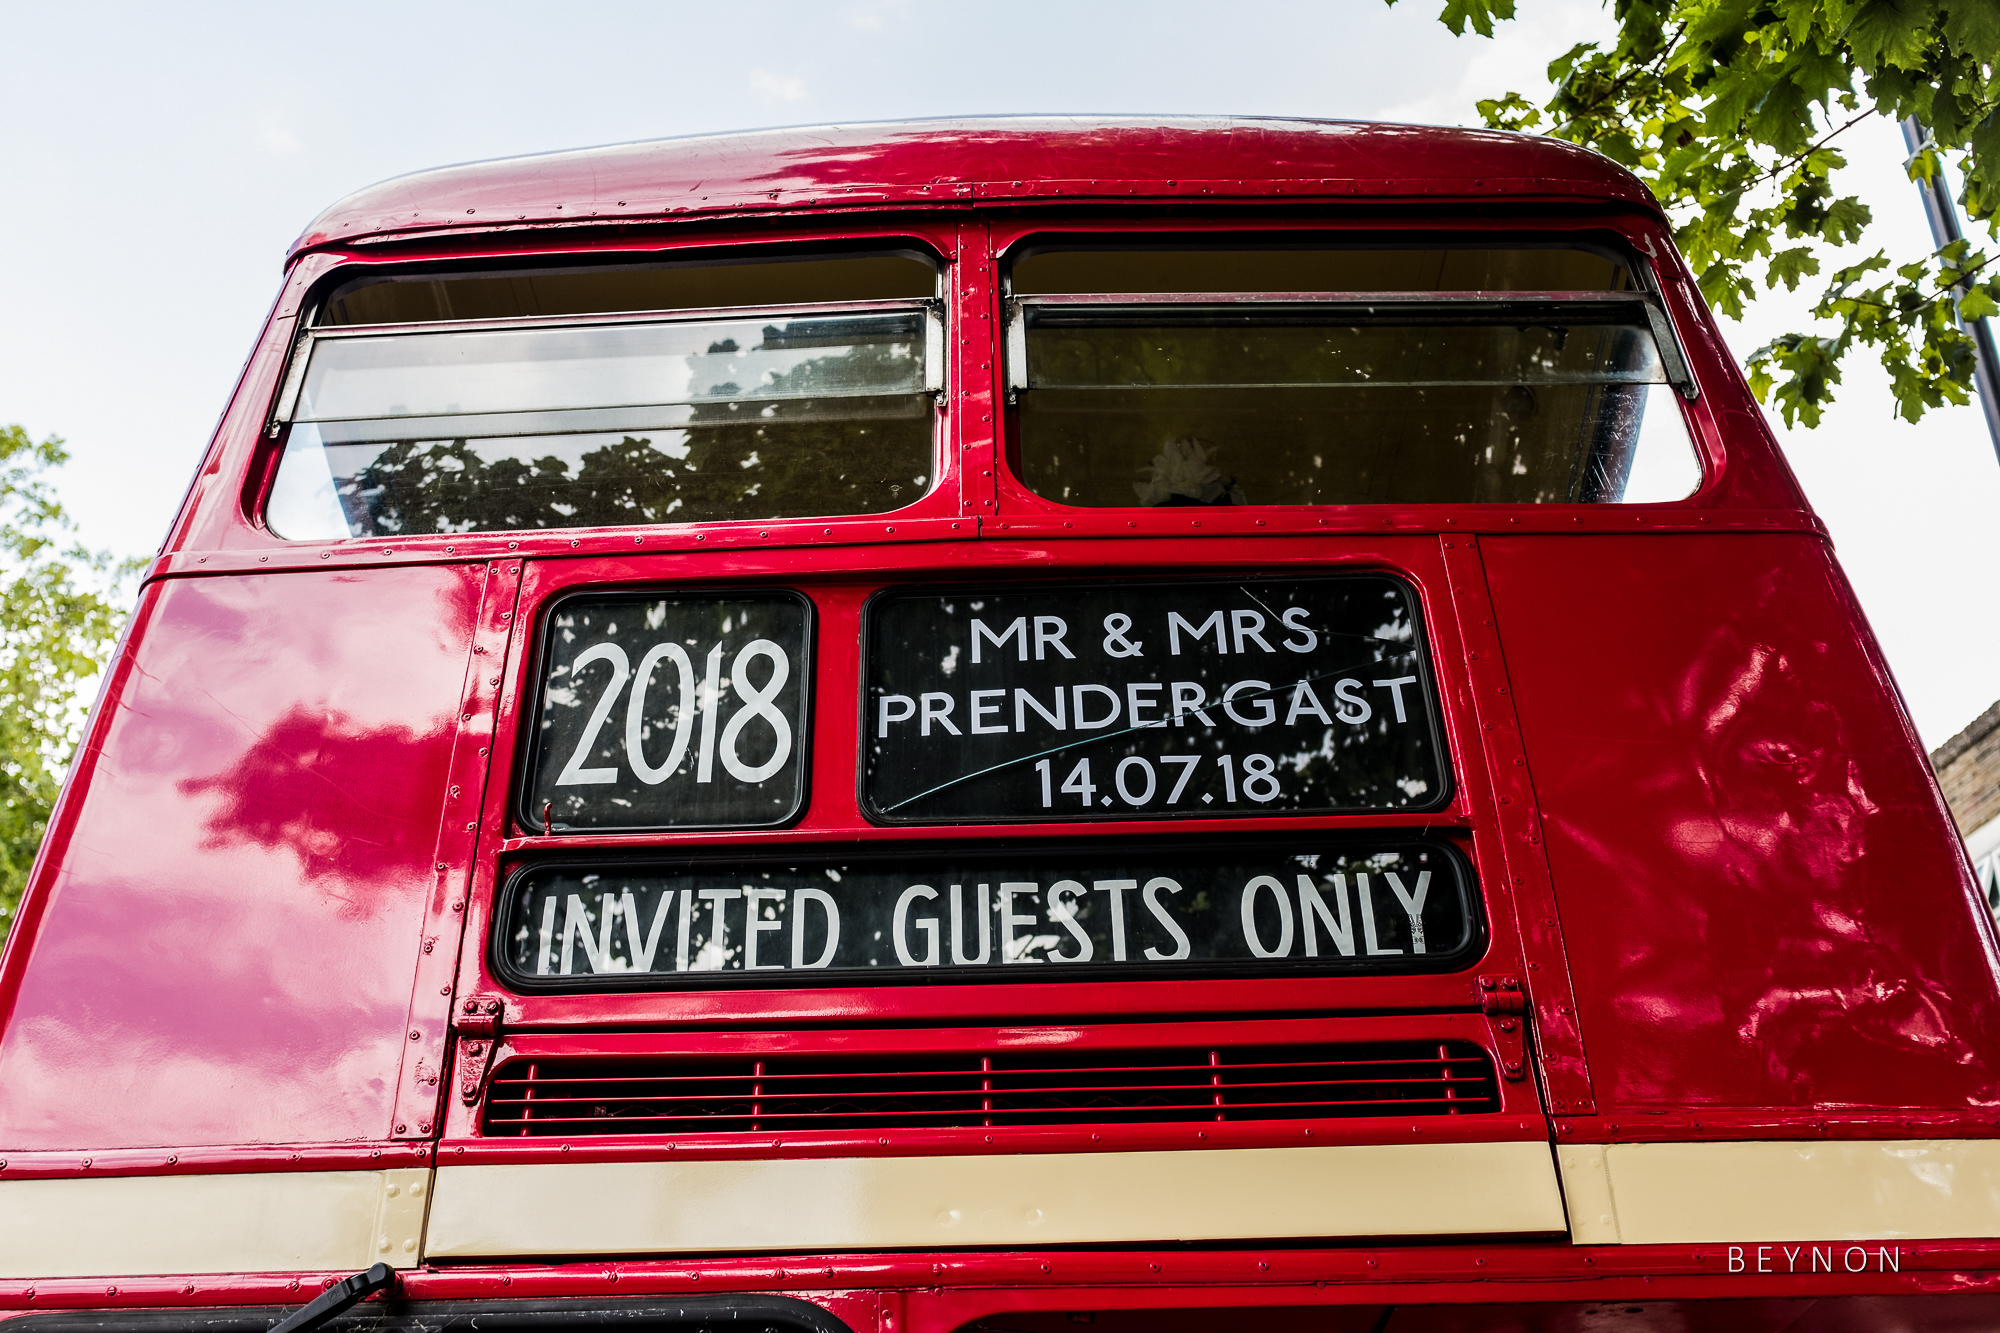 The Wedding Party Bus